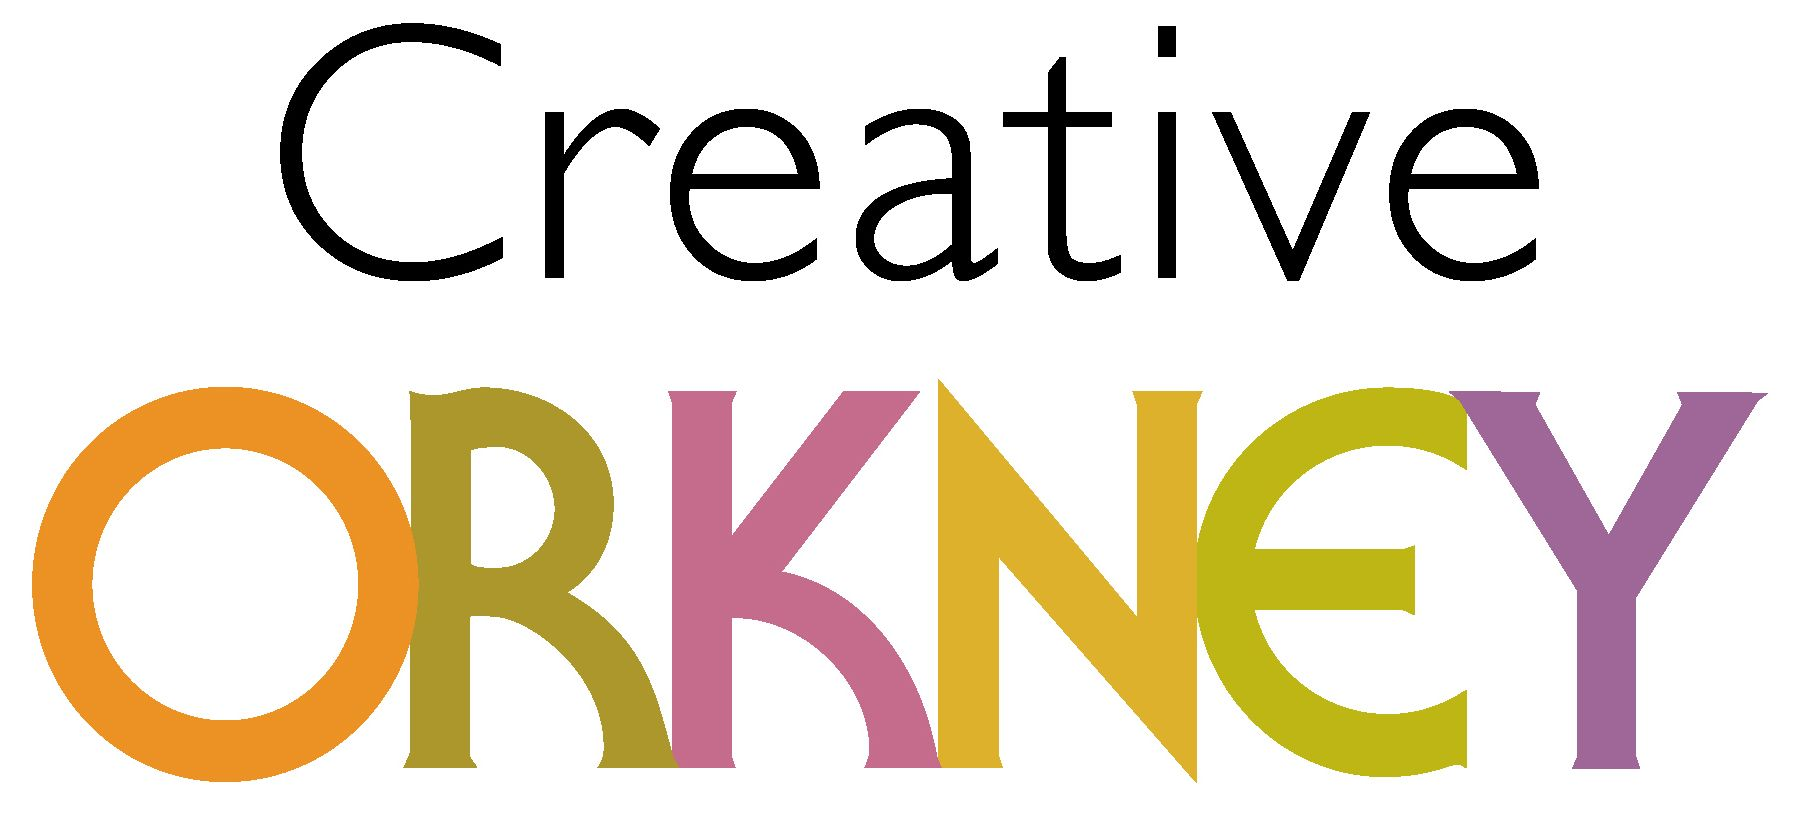 Creative Orkney